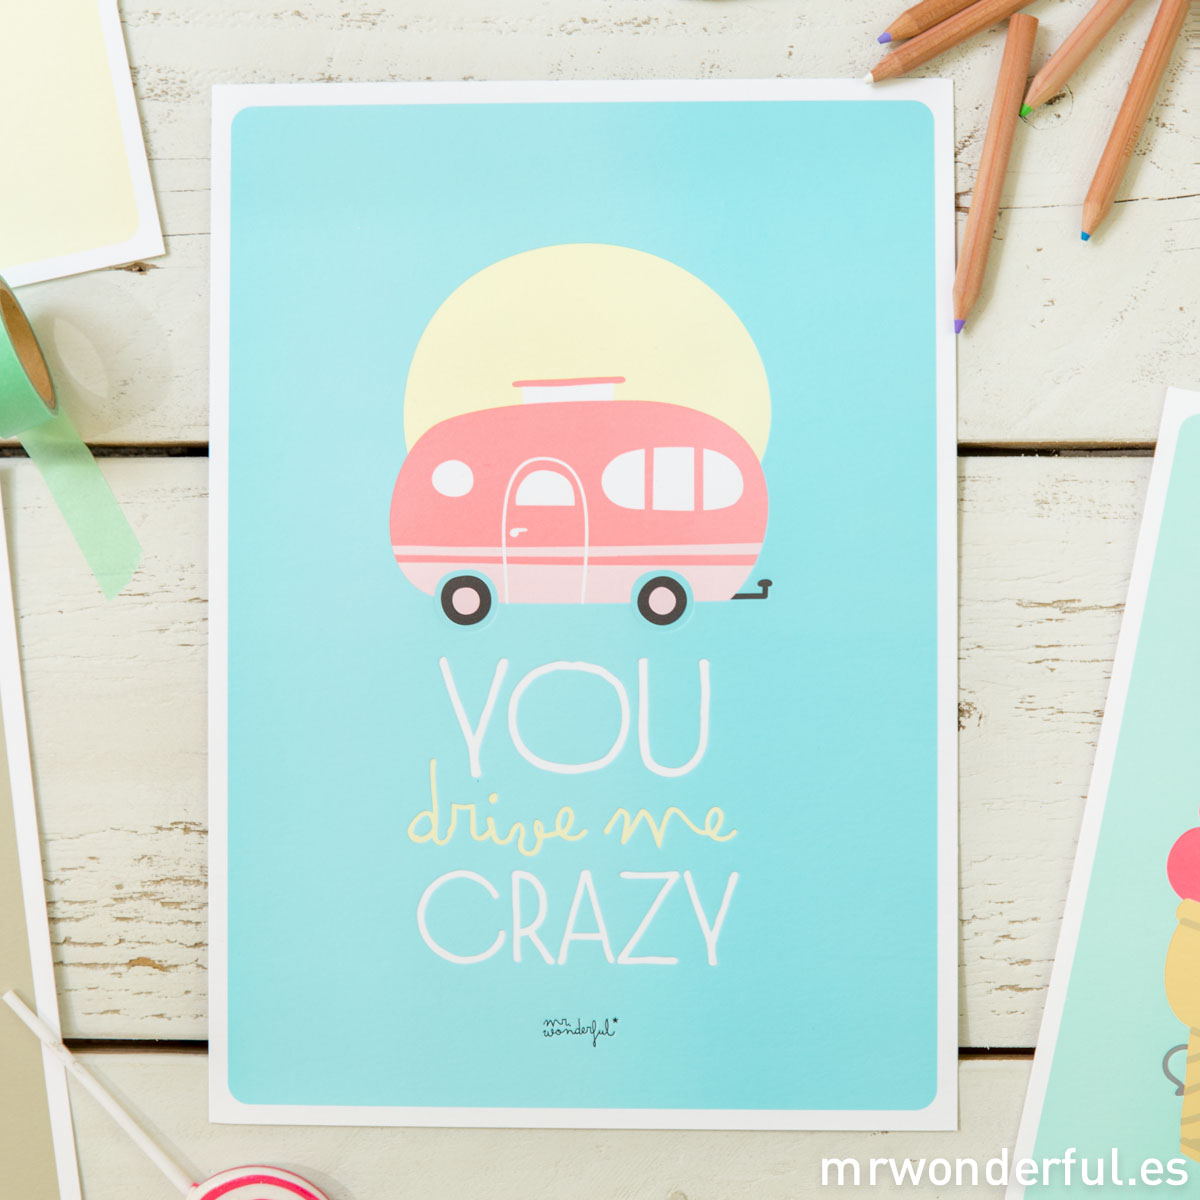 mrwonderful_LAM-SUMMER-01_lamina-you-drive-me-crazy-14